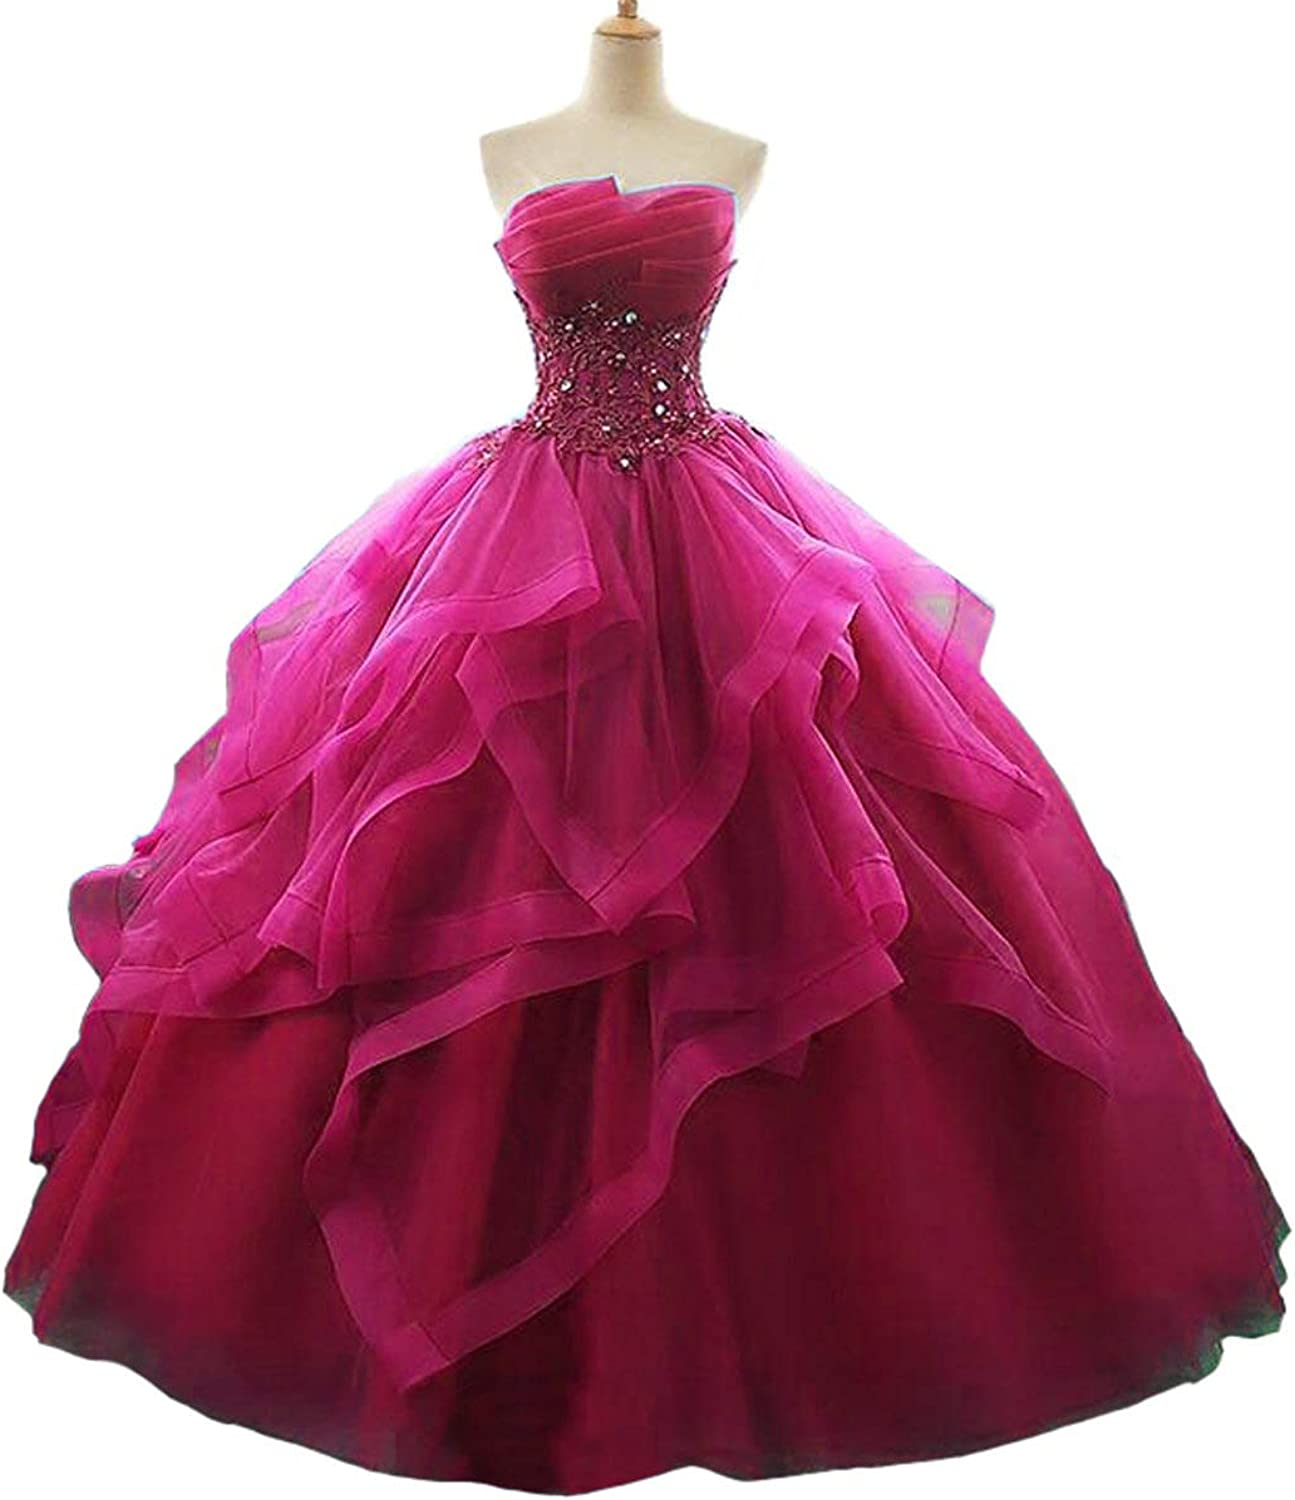 EileenDor Women's High Low Ruffles Quinceanera Dresses Ball Gown Strapless Lace Beaded Prom Dress Princess Gowns